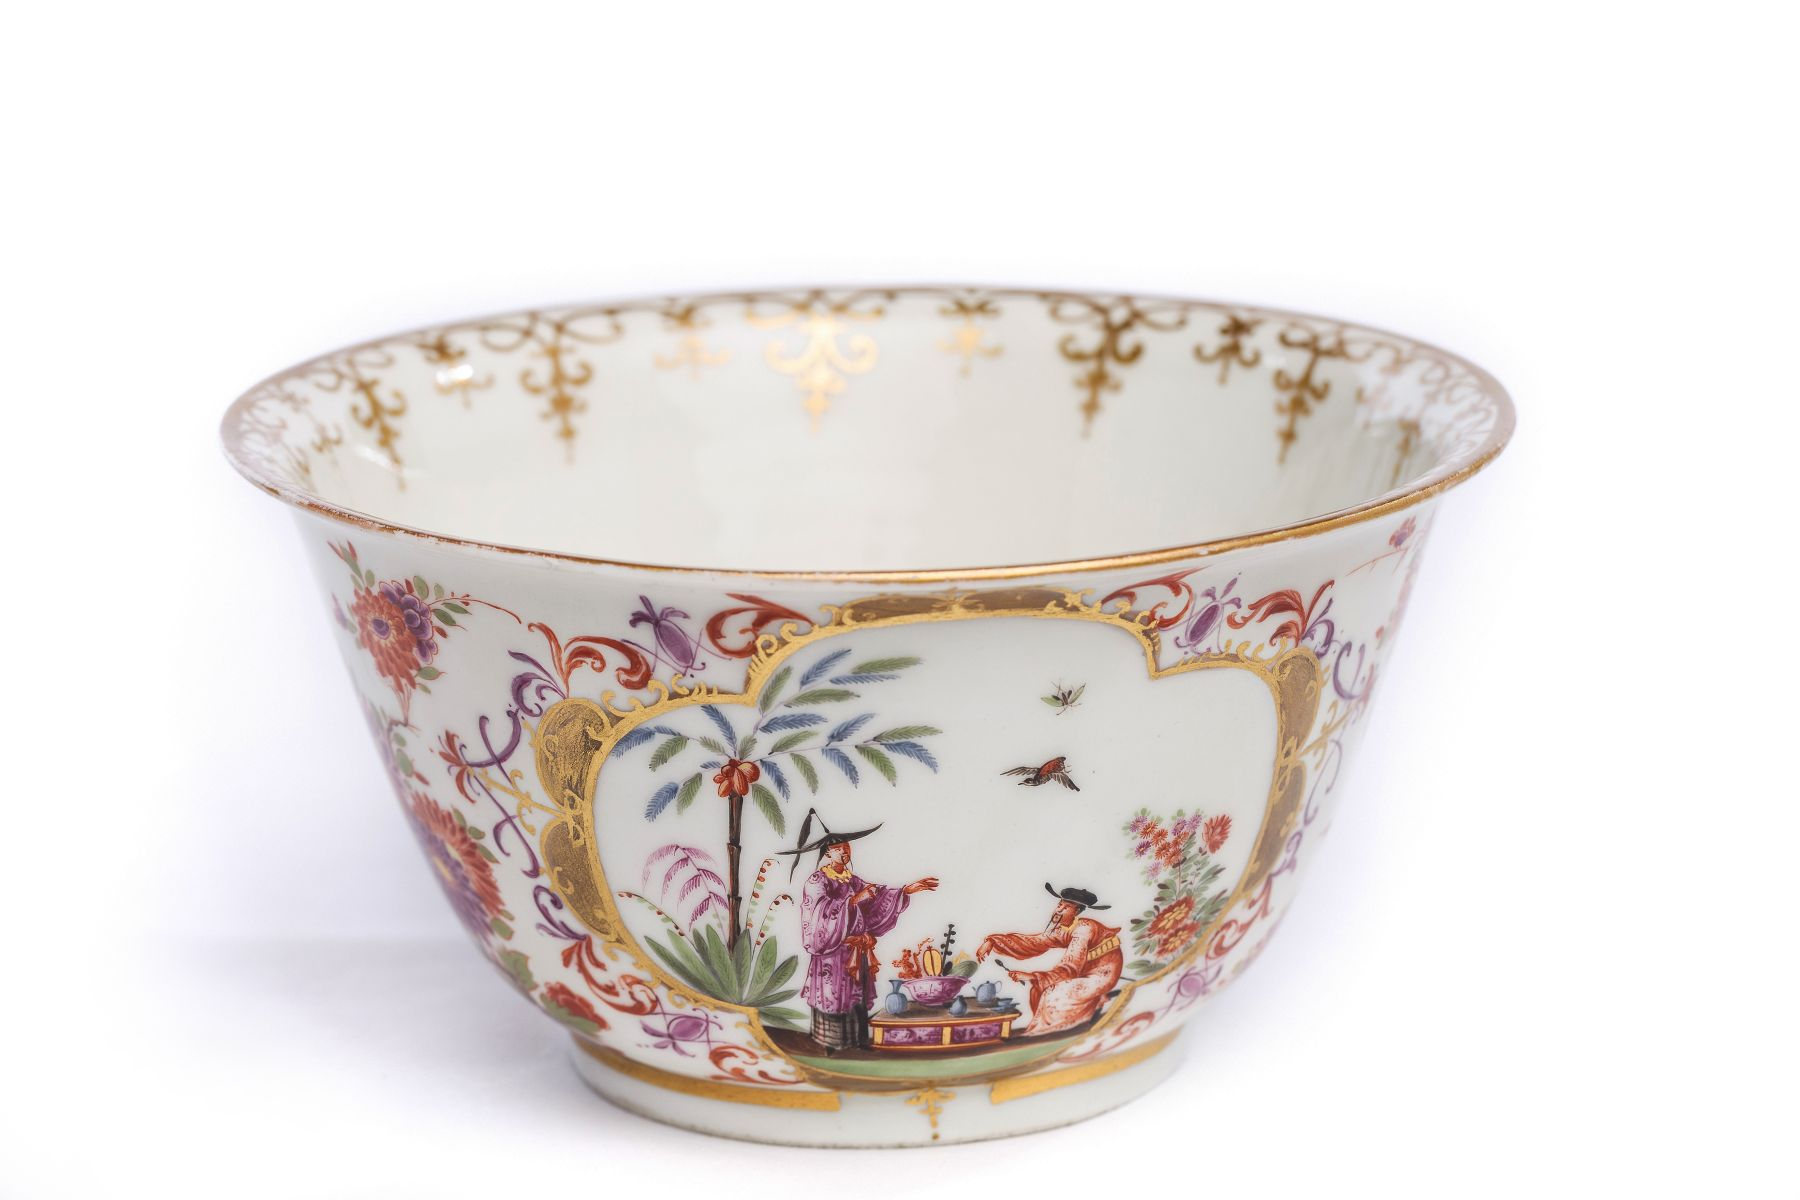 "#2 Rare bowl with ""Chinoiserie"" scenes, Meissen 1720/30 